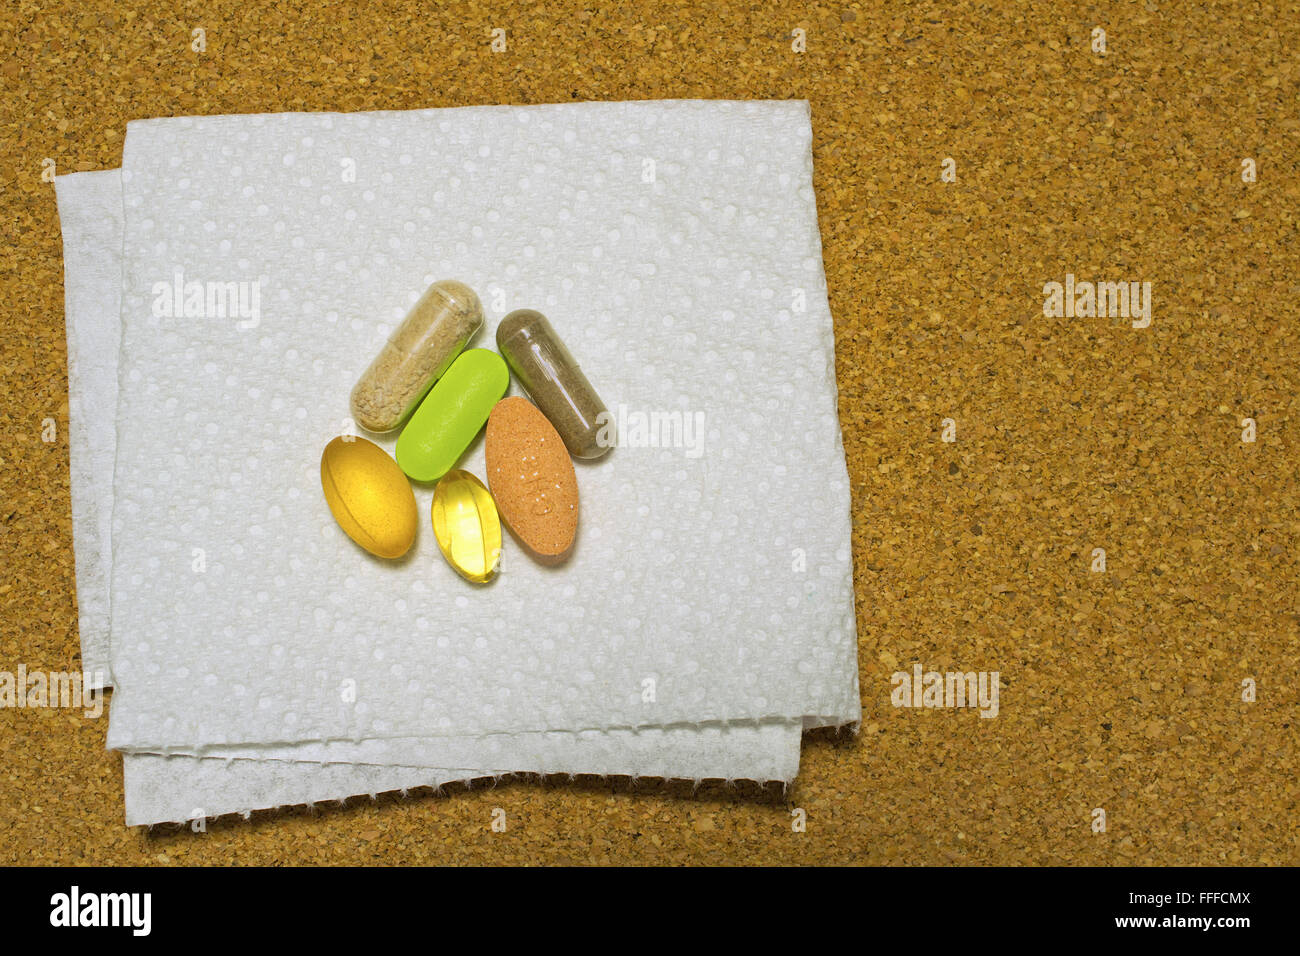 Dietary supplements on paper towel over cork background - Stock Image